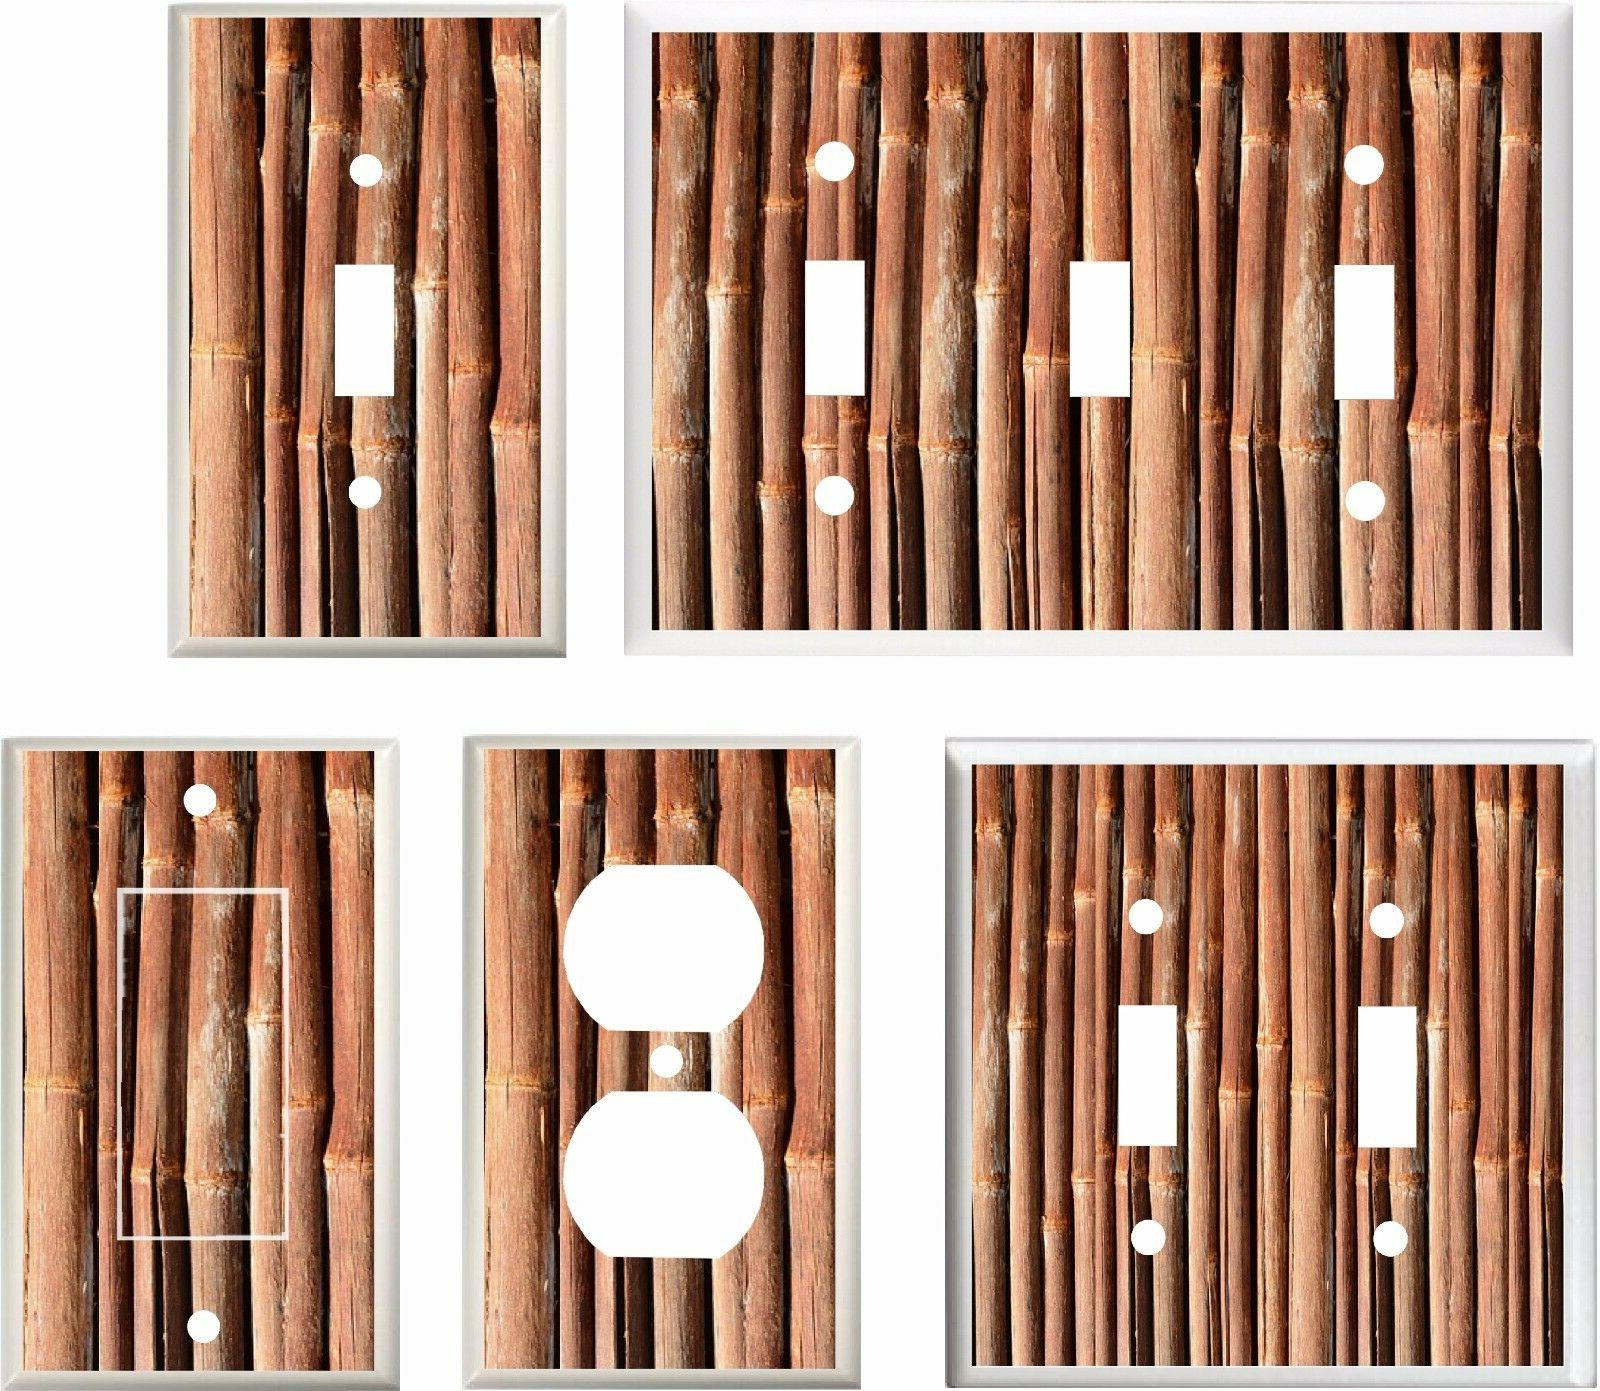 LIGHT SWITCH COVER PLATE  BAMBOO STALKS  BROWN TONES  K1